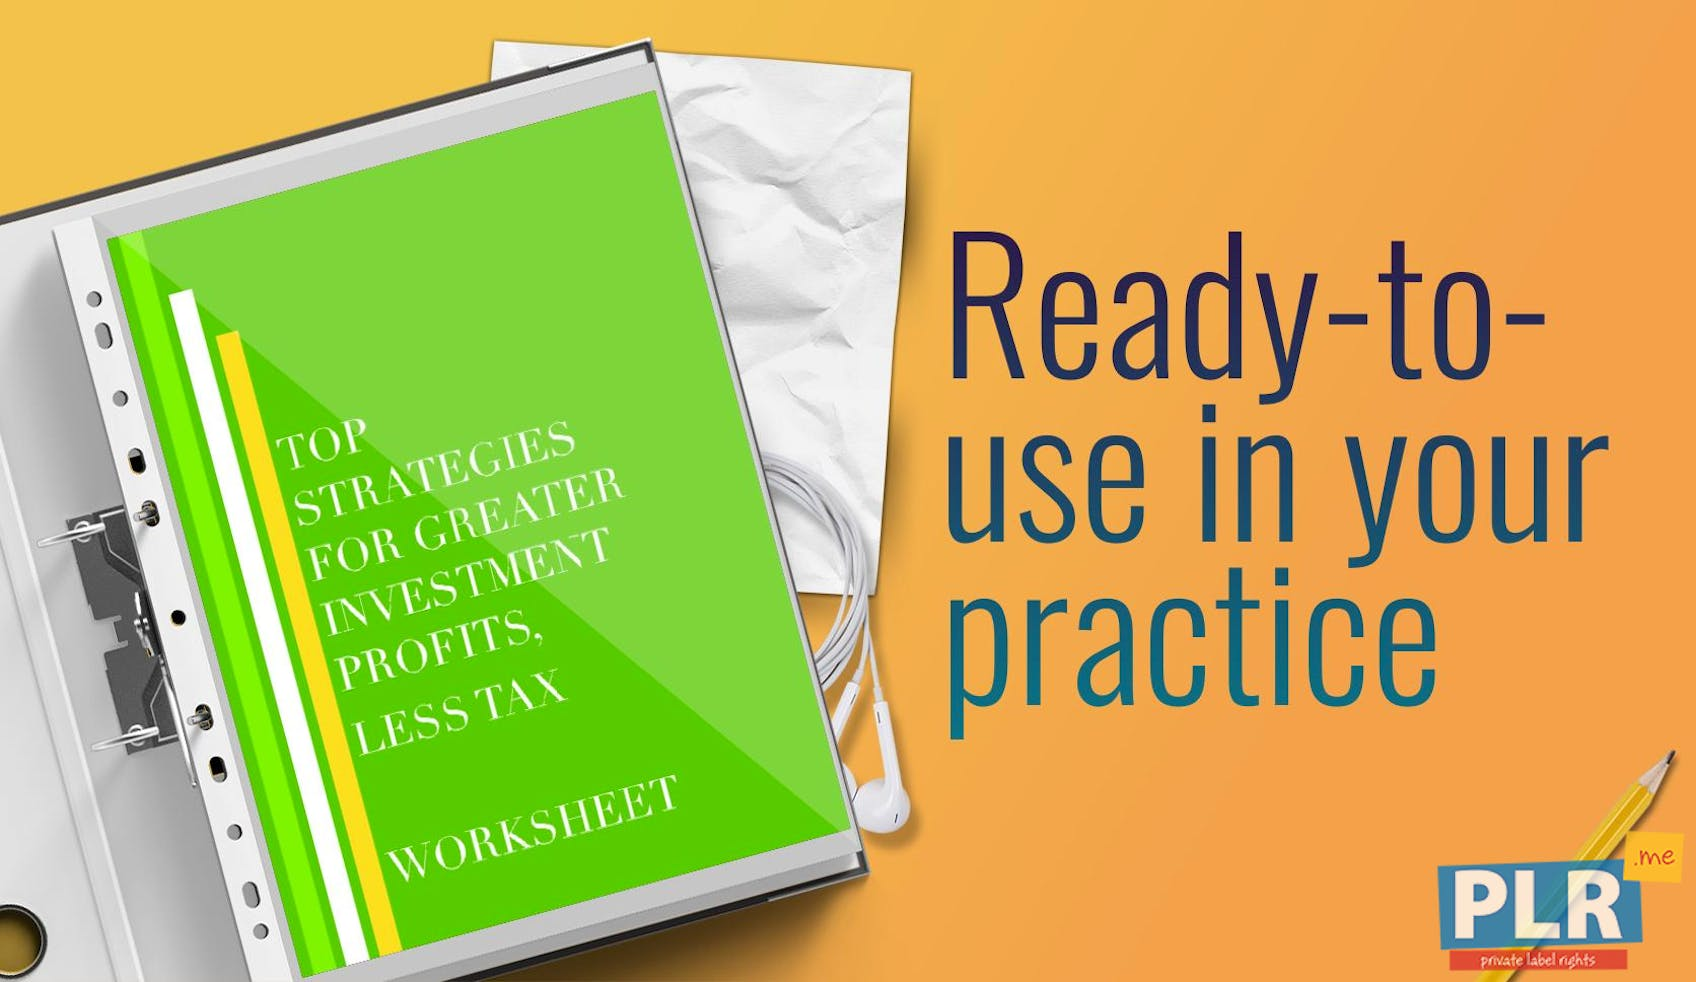 Top Strategies For Greater Investment Profits Less Tax Worksheet